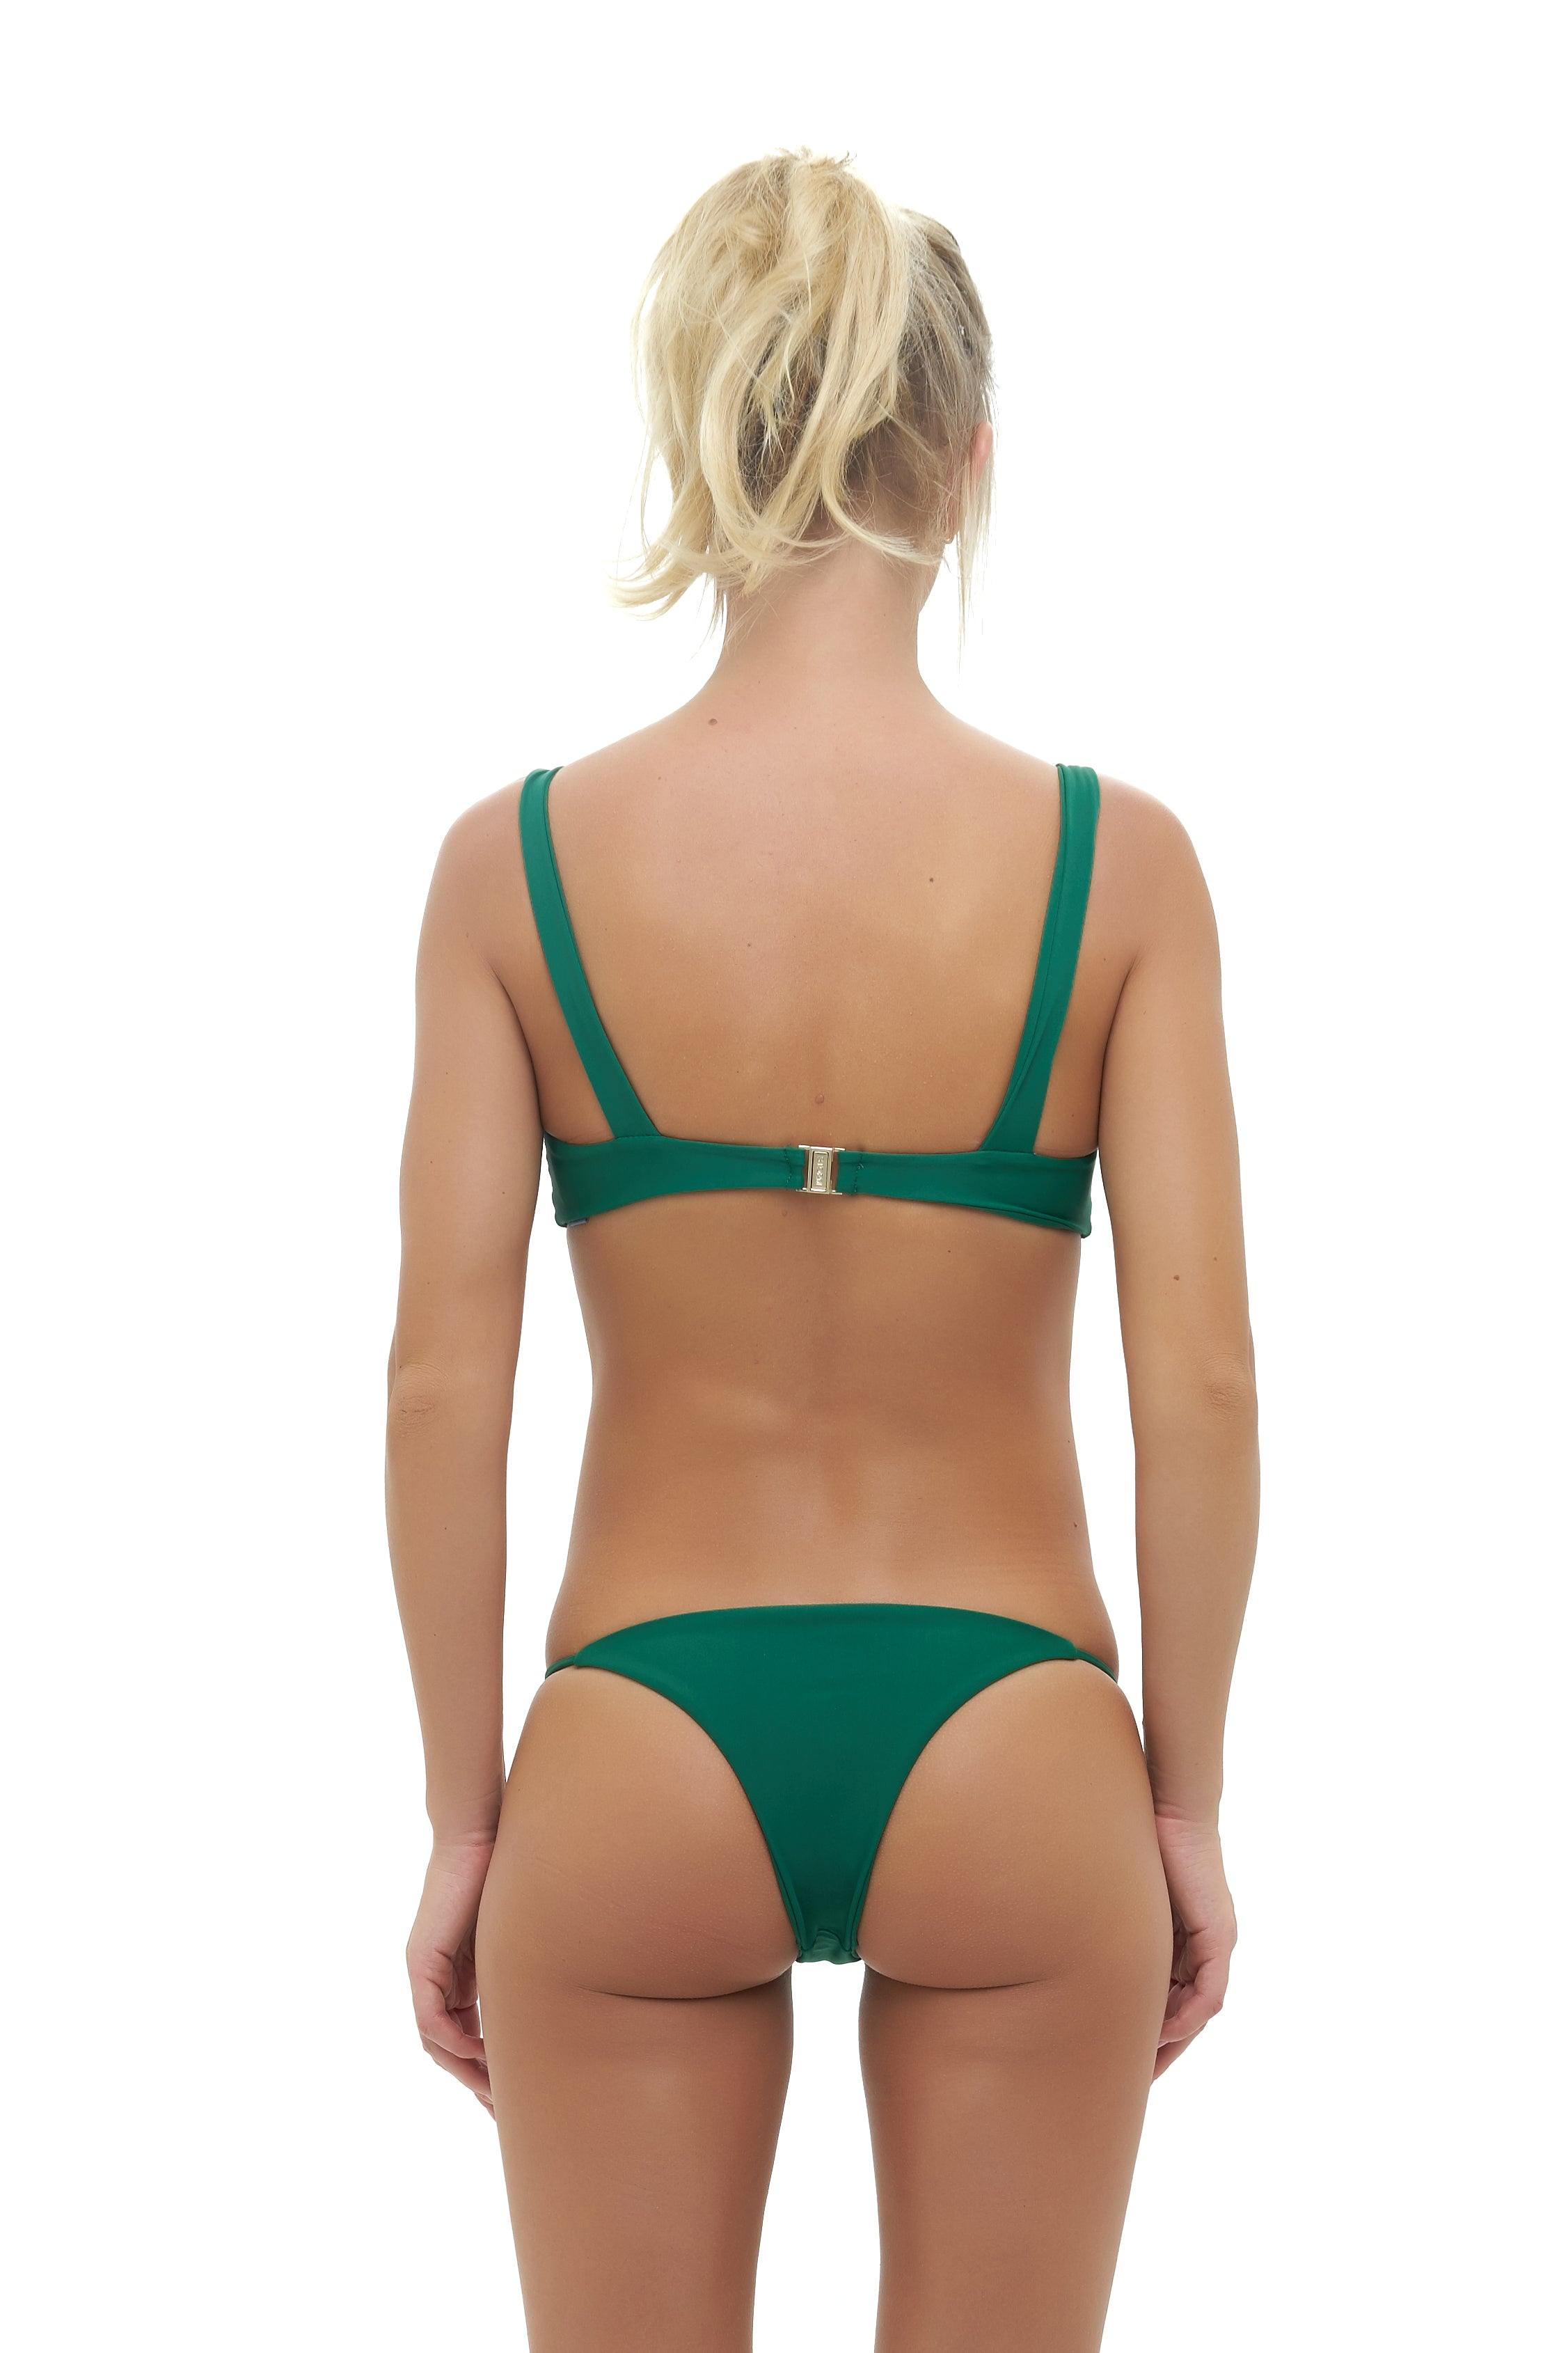 Storm Swimwear - Capri - Tube Single Side Strap Bikini Bottom in Palm Green